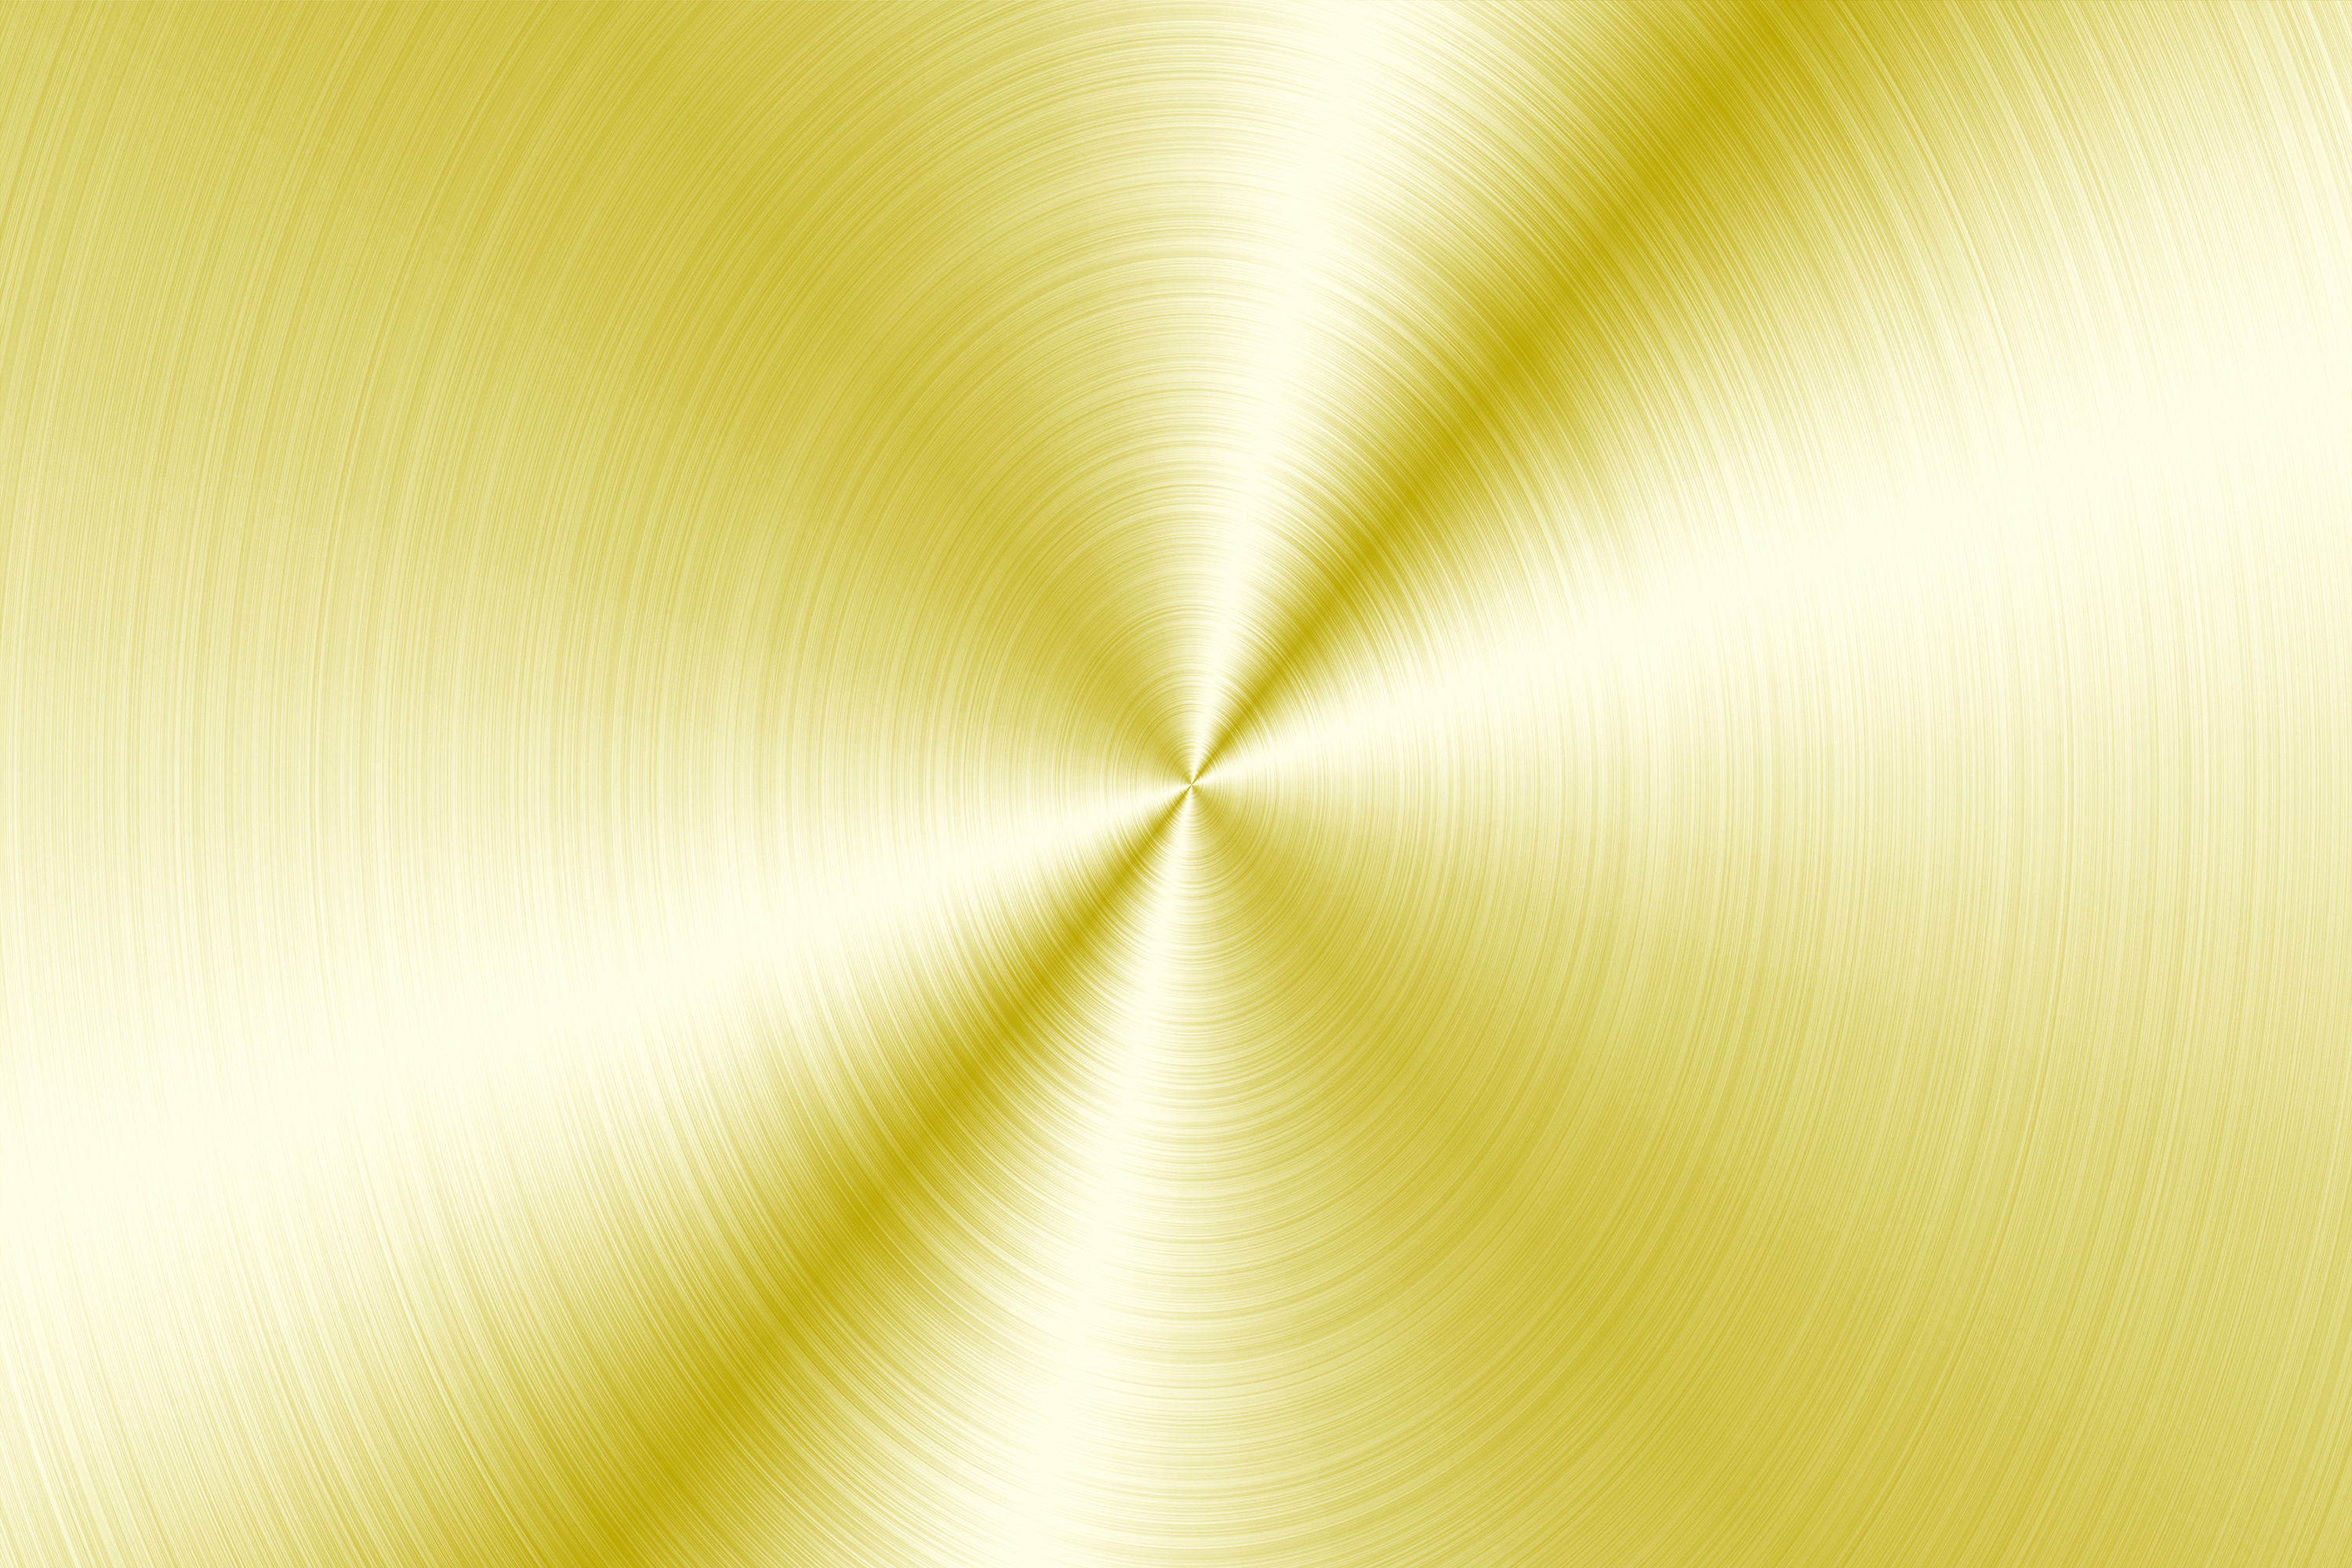 Gold Metallic Digital Paper, Gold Background example image 2